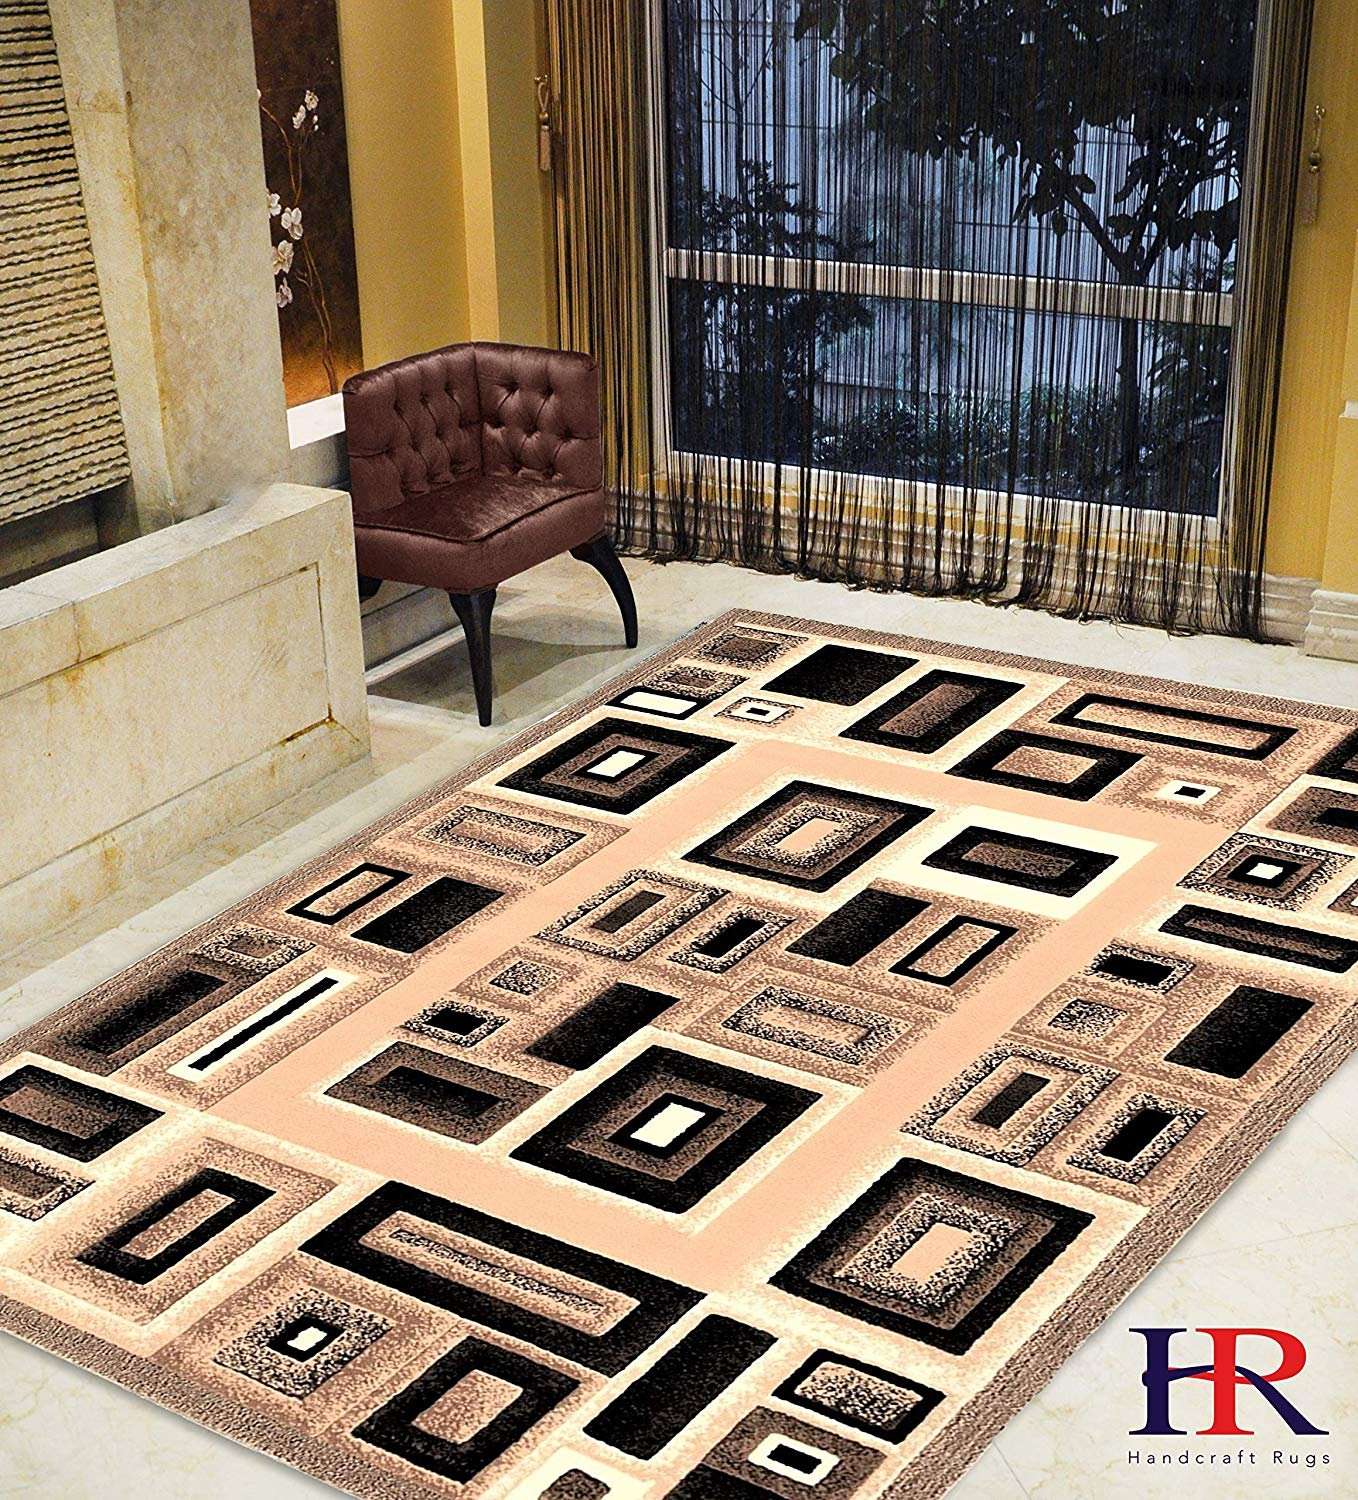 Modern Contemporary Abstract Rug- Frame/Boxy/Cube Pattern-Shed Free Beige/Ivory/Chocolate